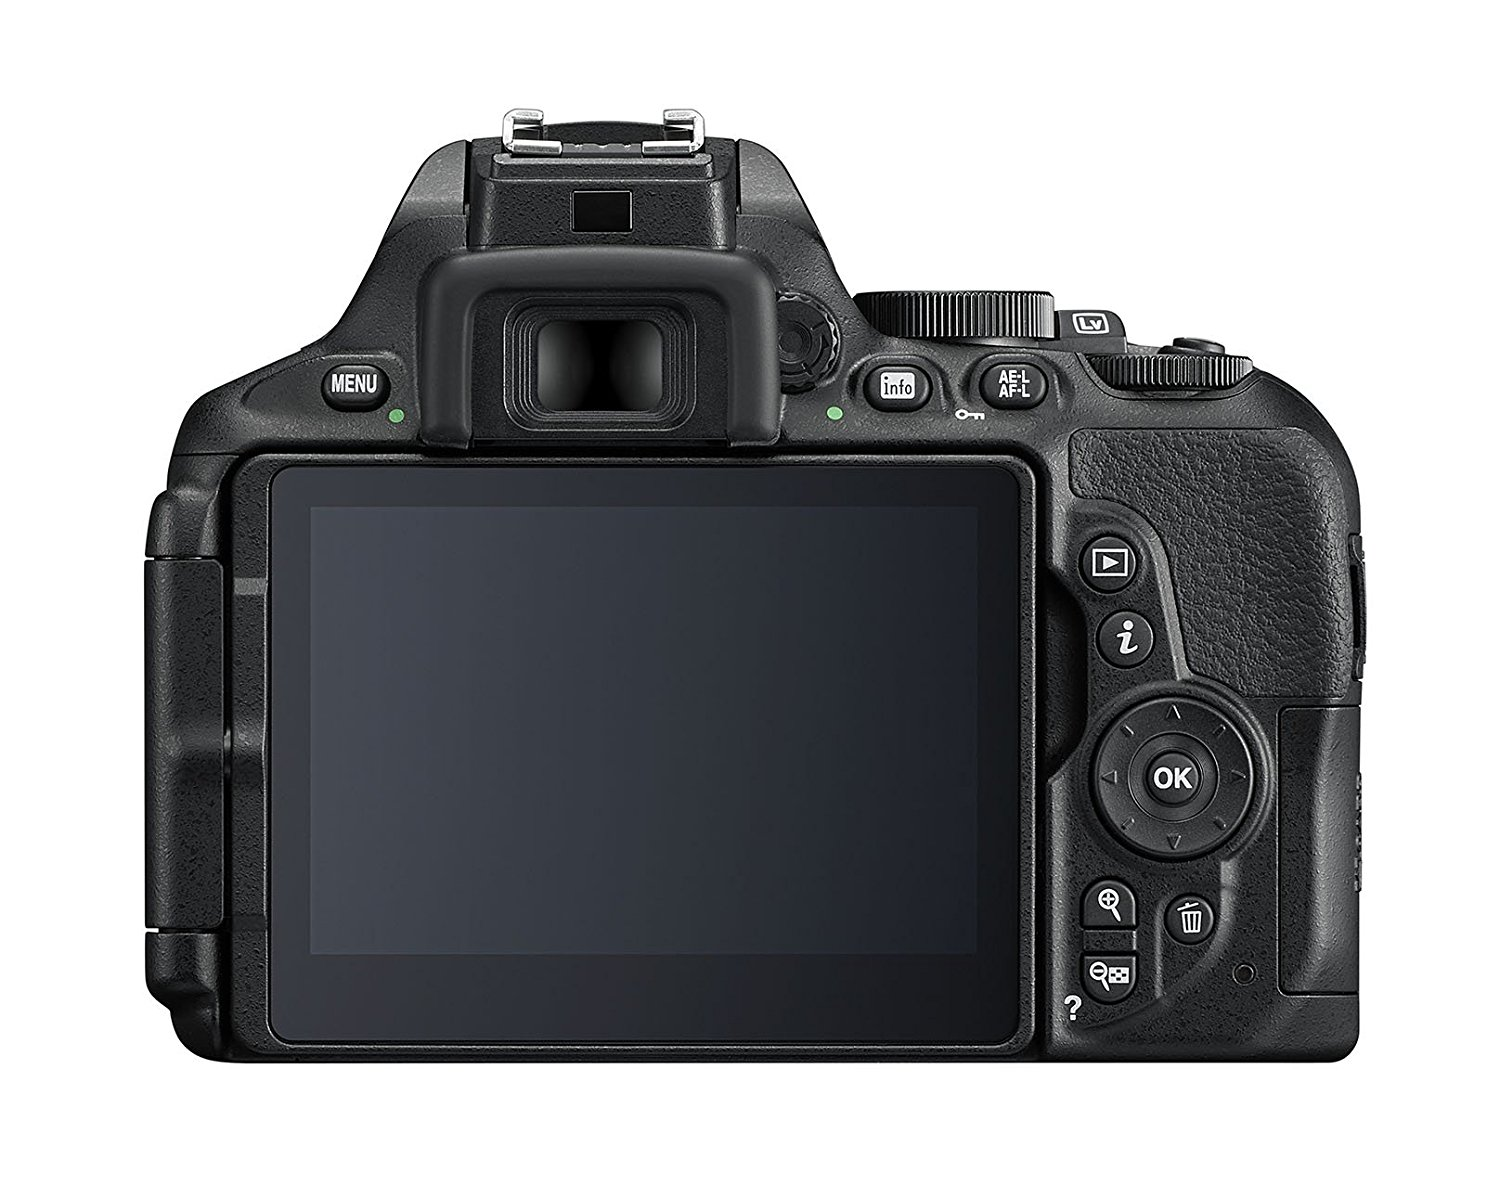 D5600 display and touch screen